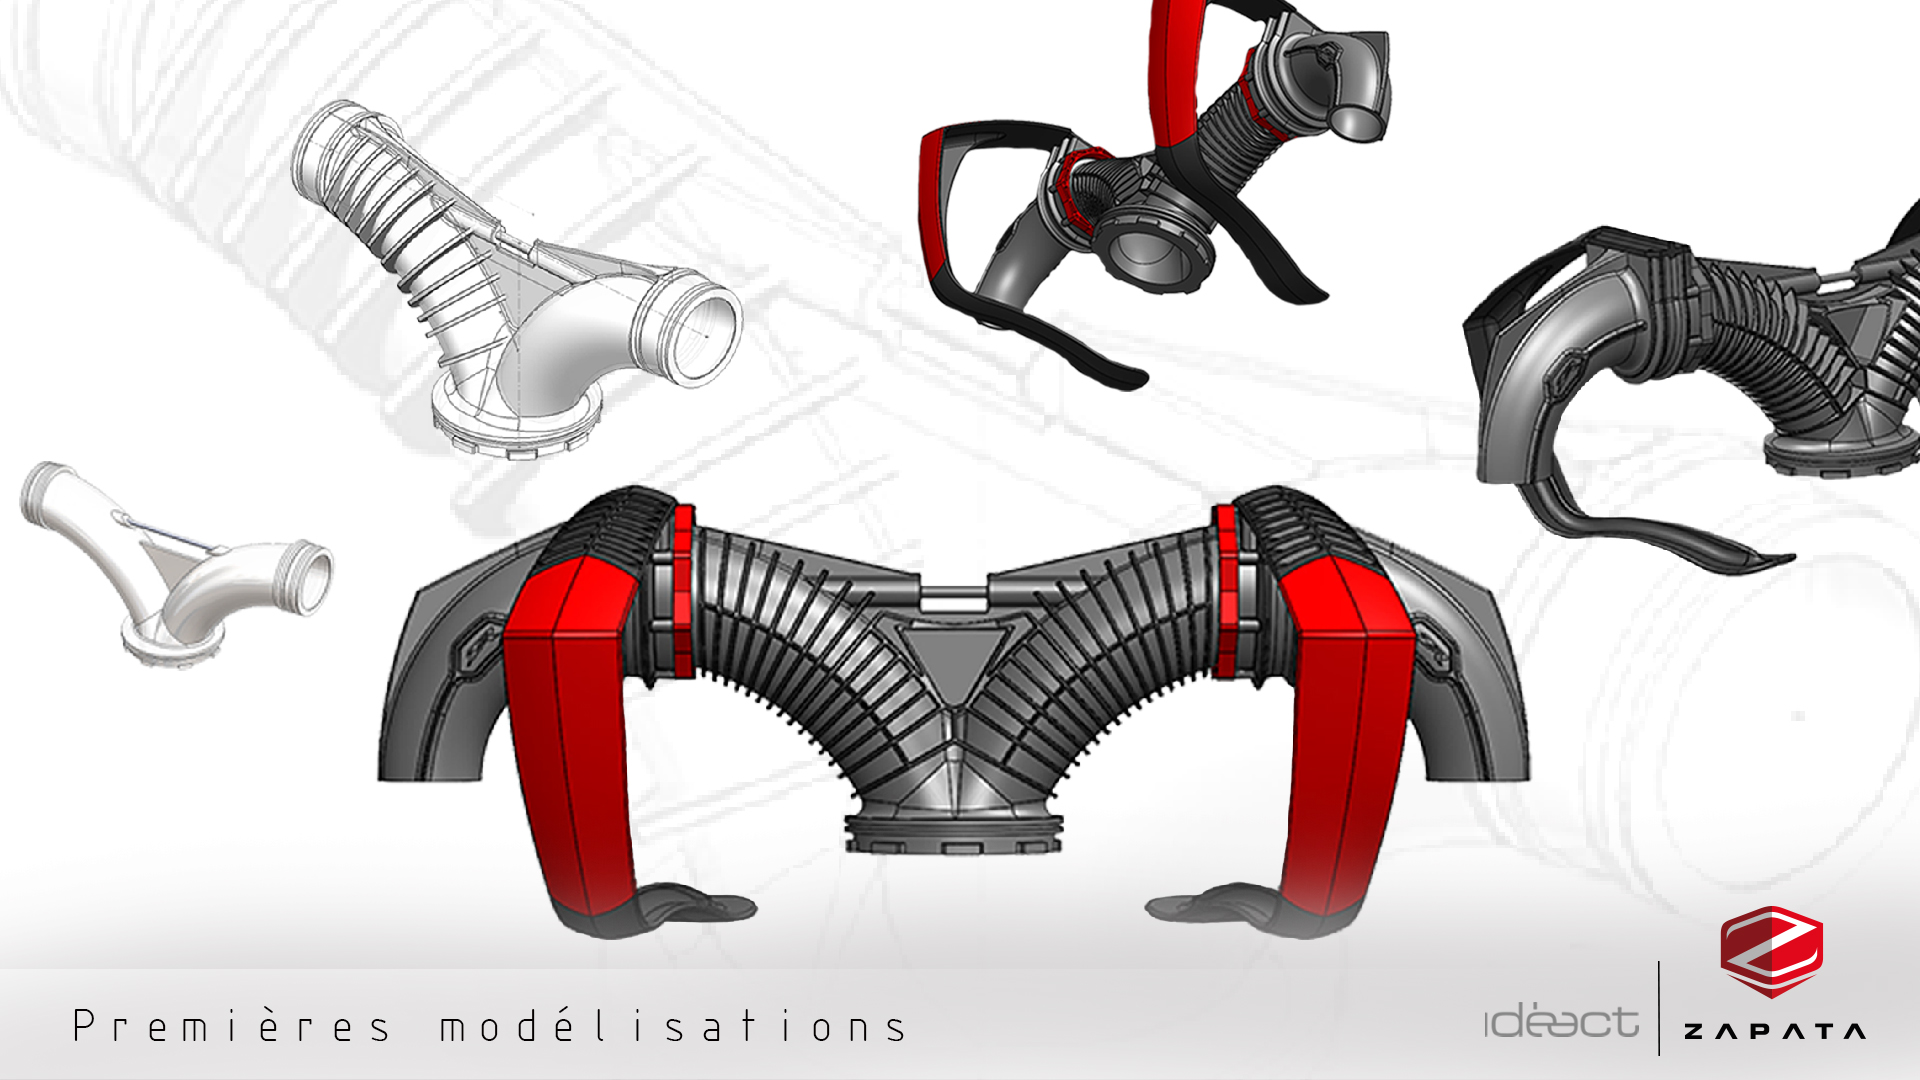 Zapata Flyboard Finalisation Design